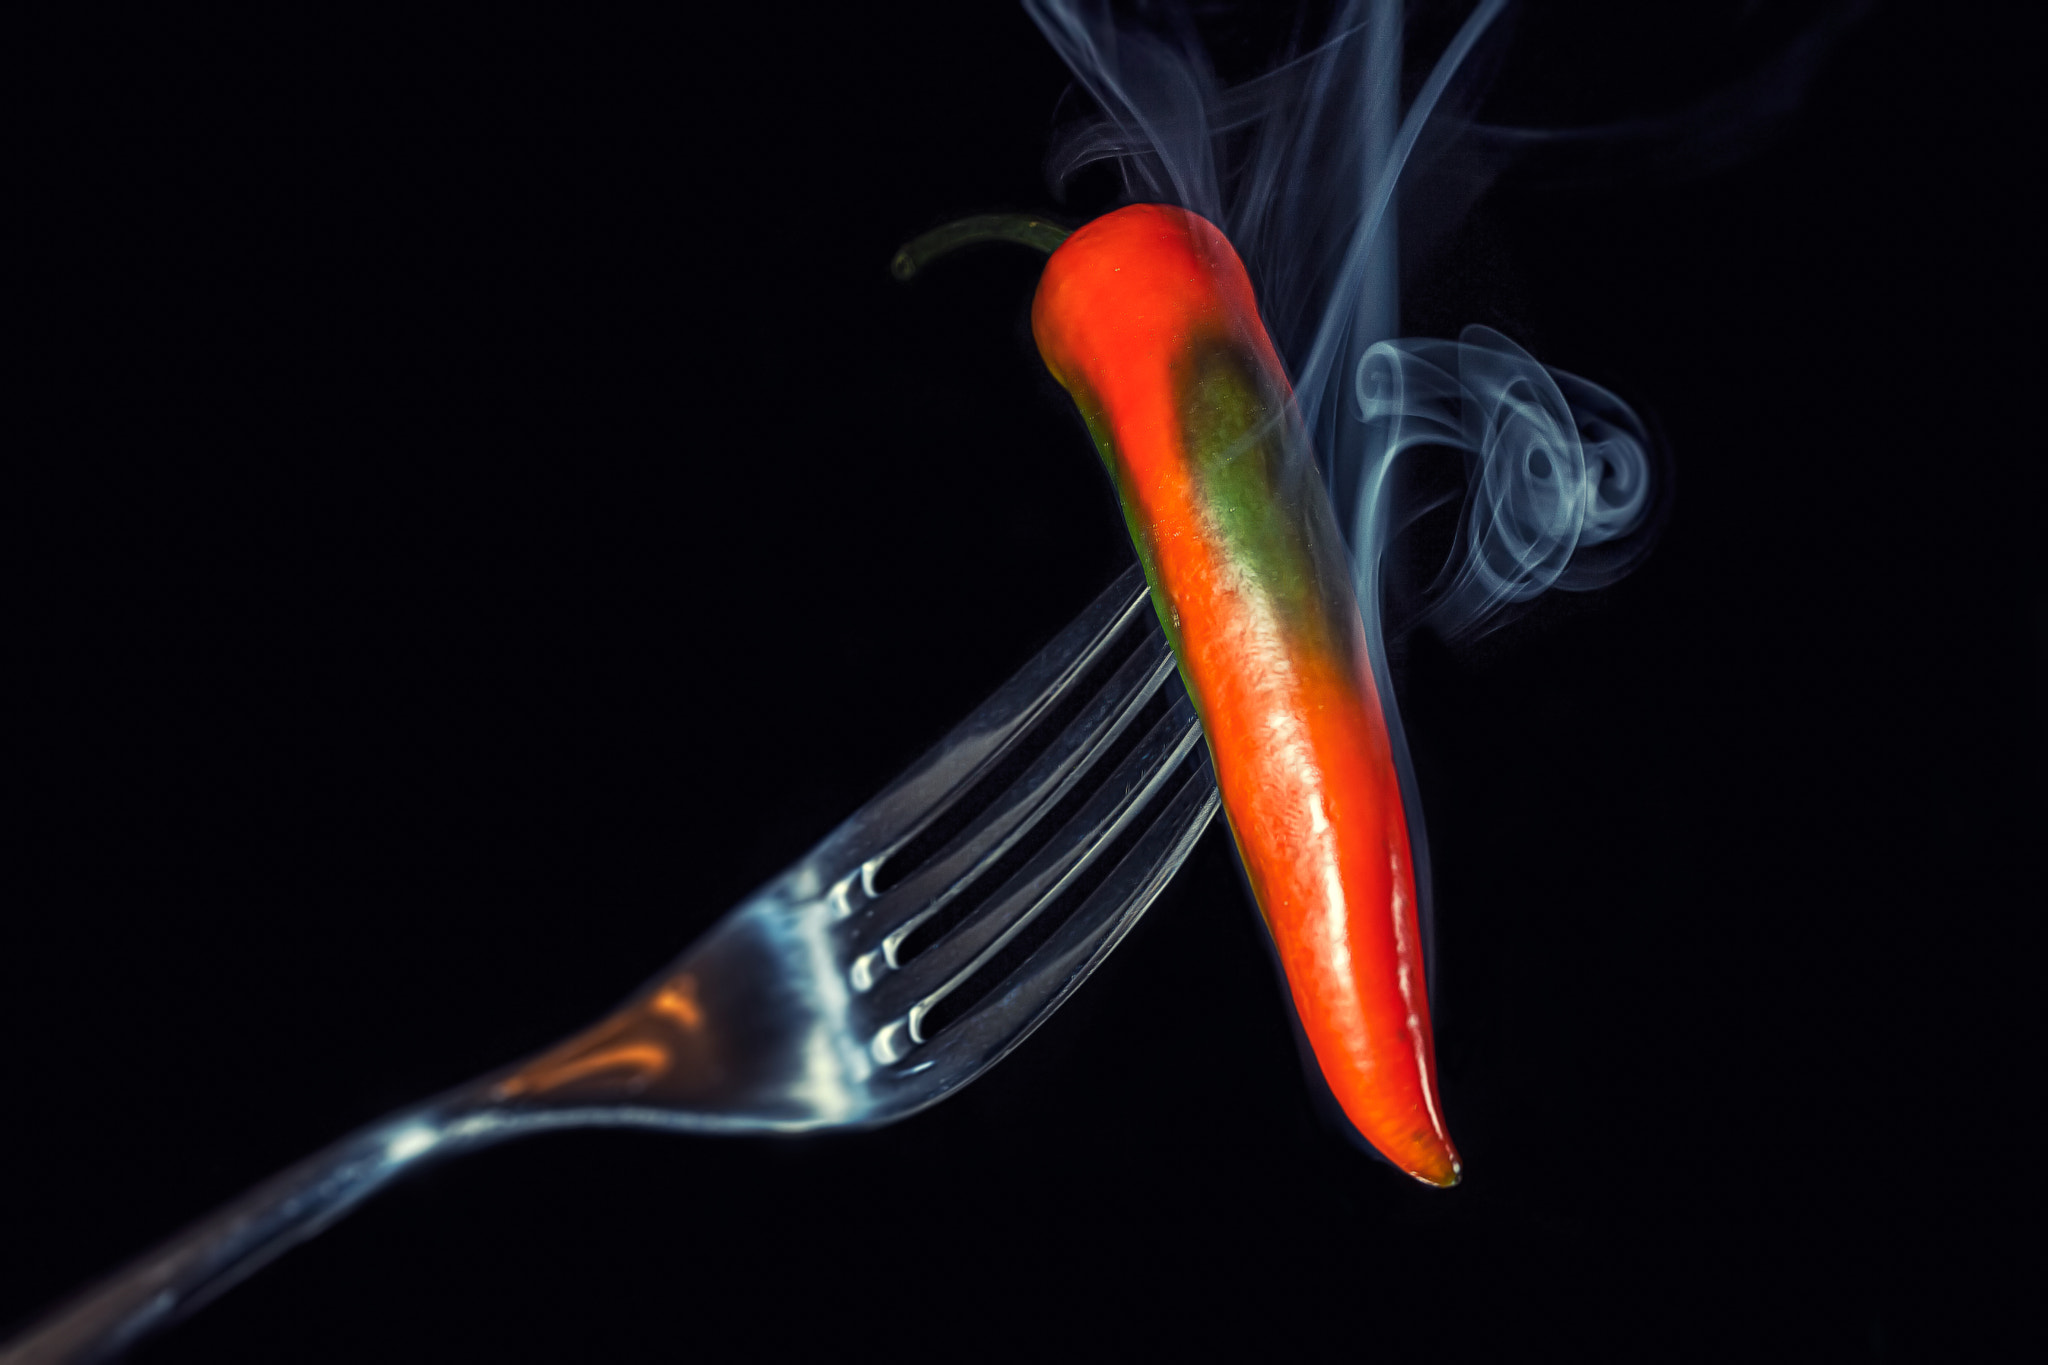 Photograph Smoking Hot Chili by Tony Antoniou on 500px